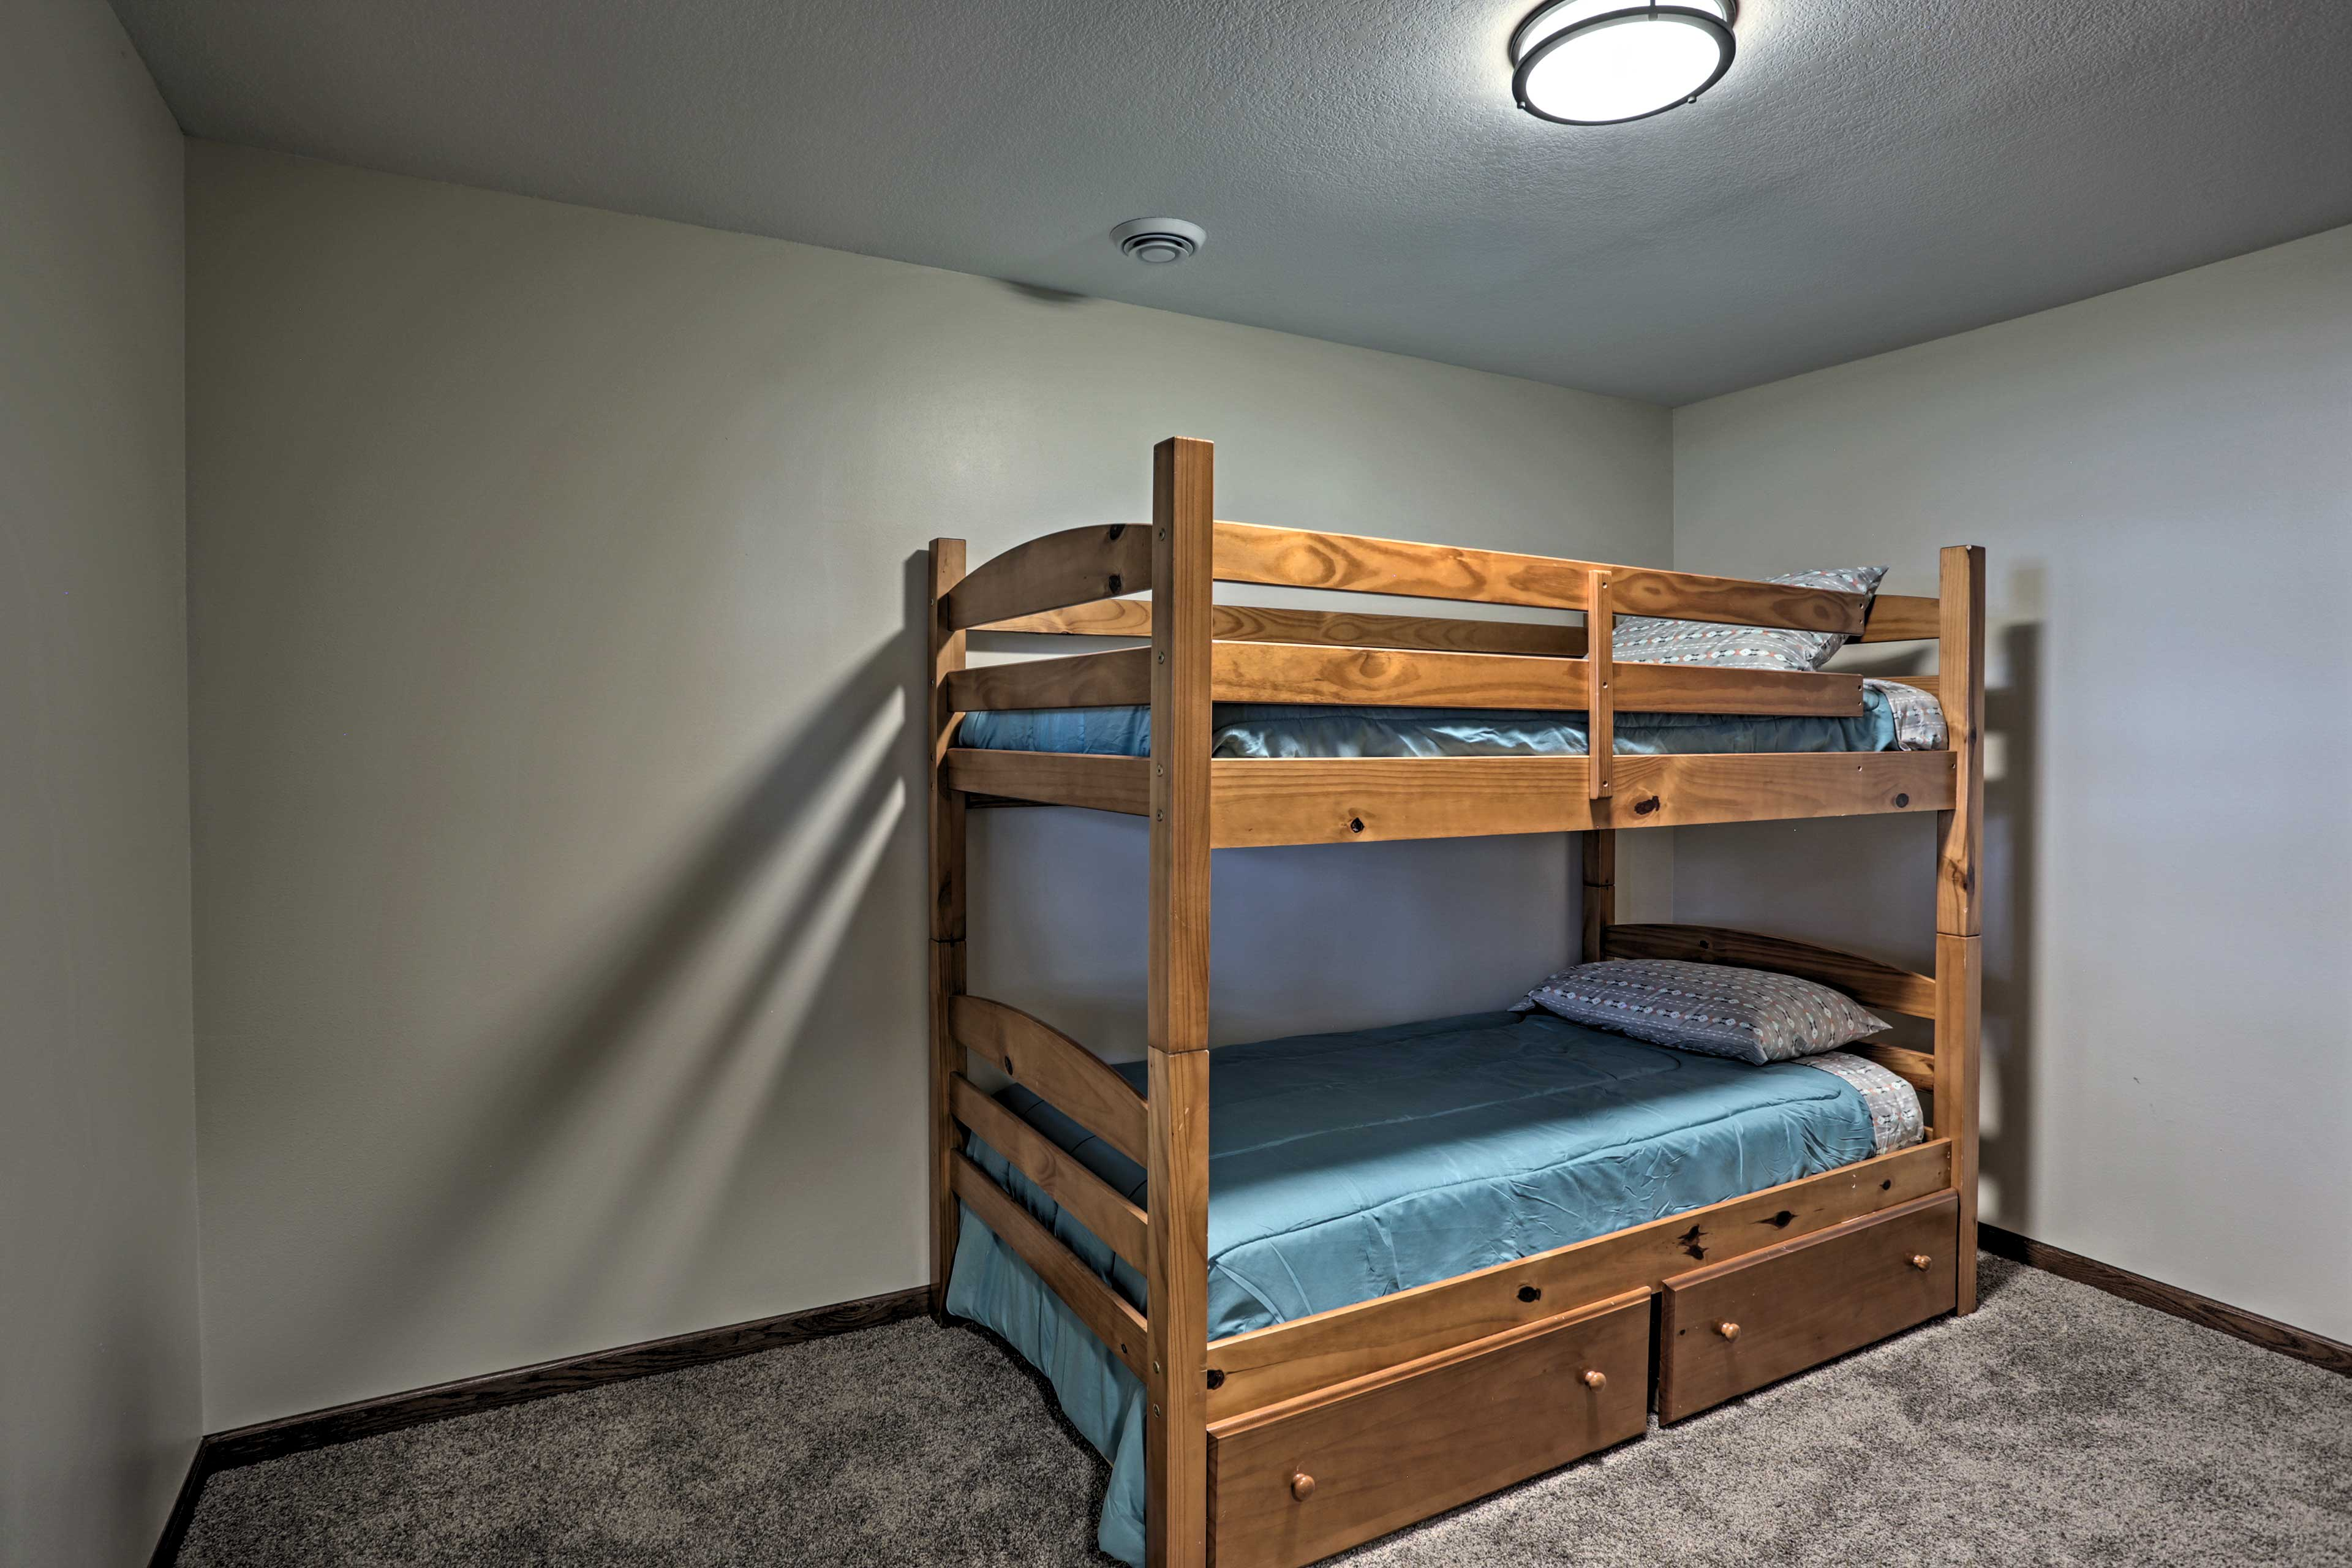 Two guests will quickly fall asleep on this twin-over-twin bunk bed.